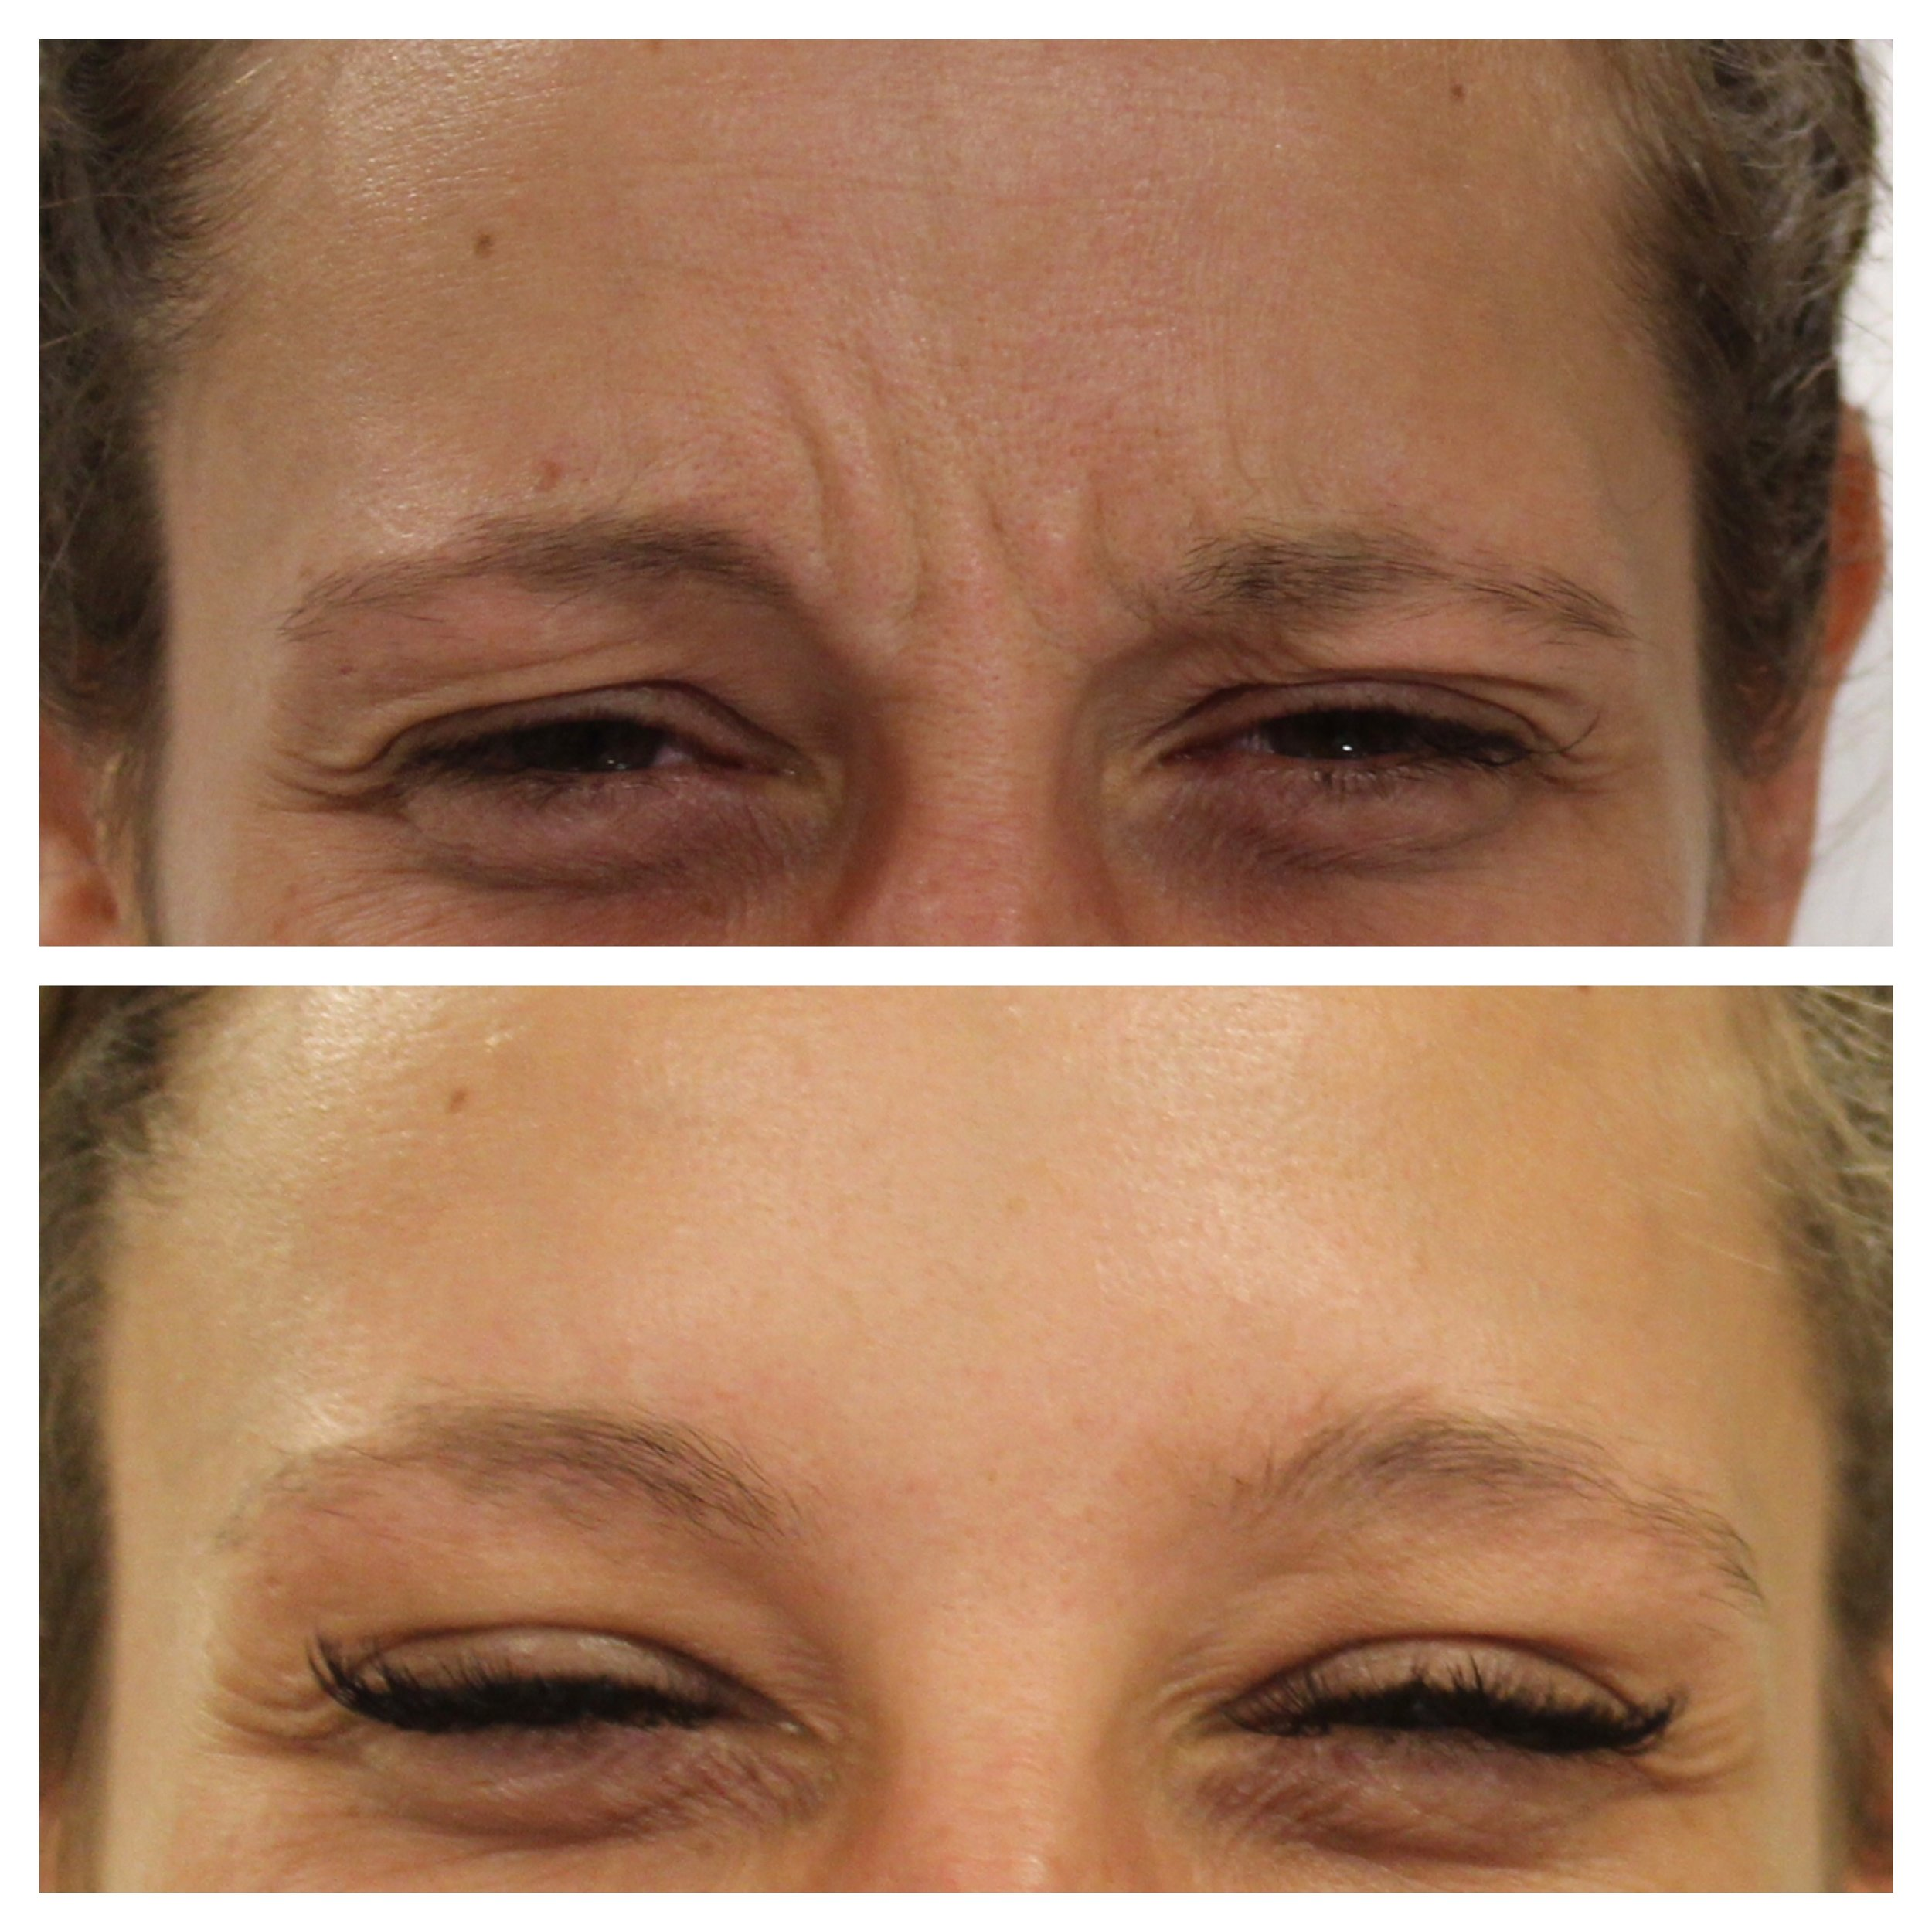 Before and one week after anti-wrinkle treatment for the frown lines